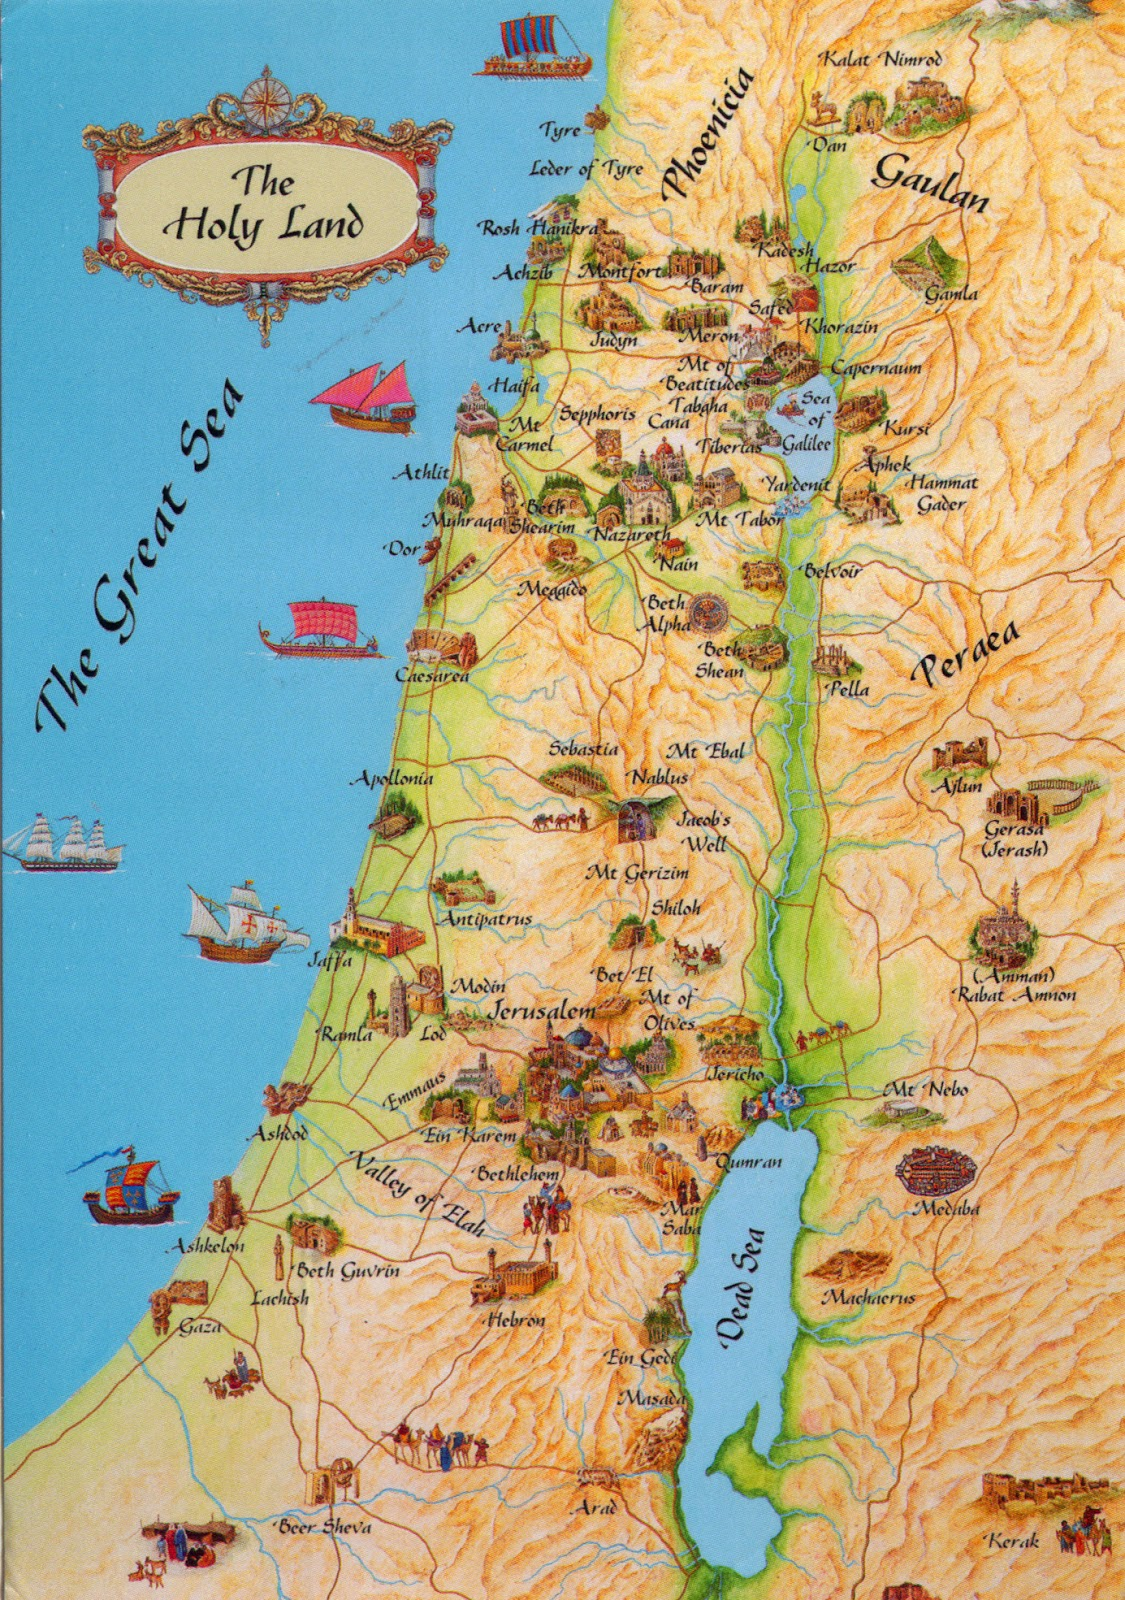 World come to my home 0315 israel the map of the holy land 0315 israel the map of the holy land gumiabroncs Image collections